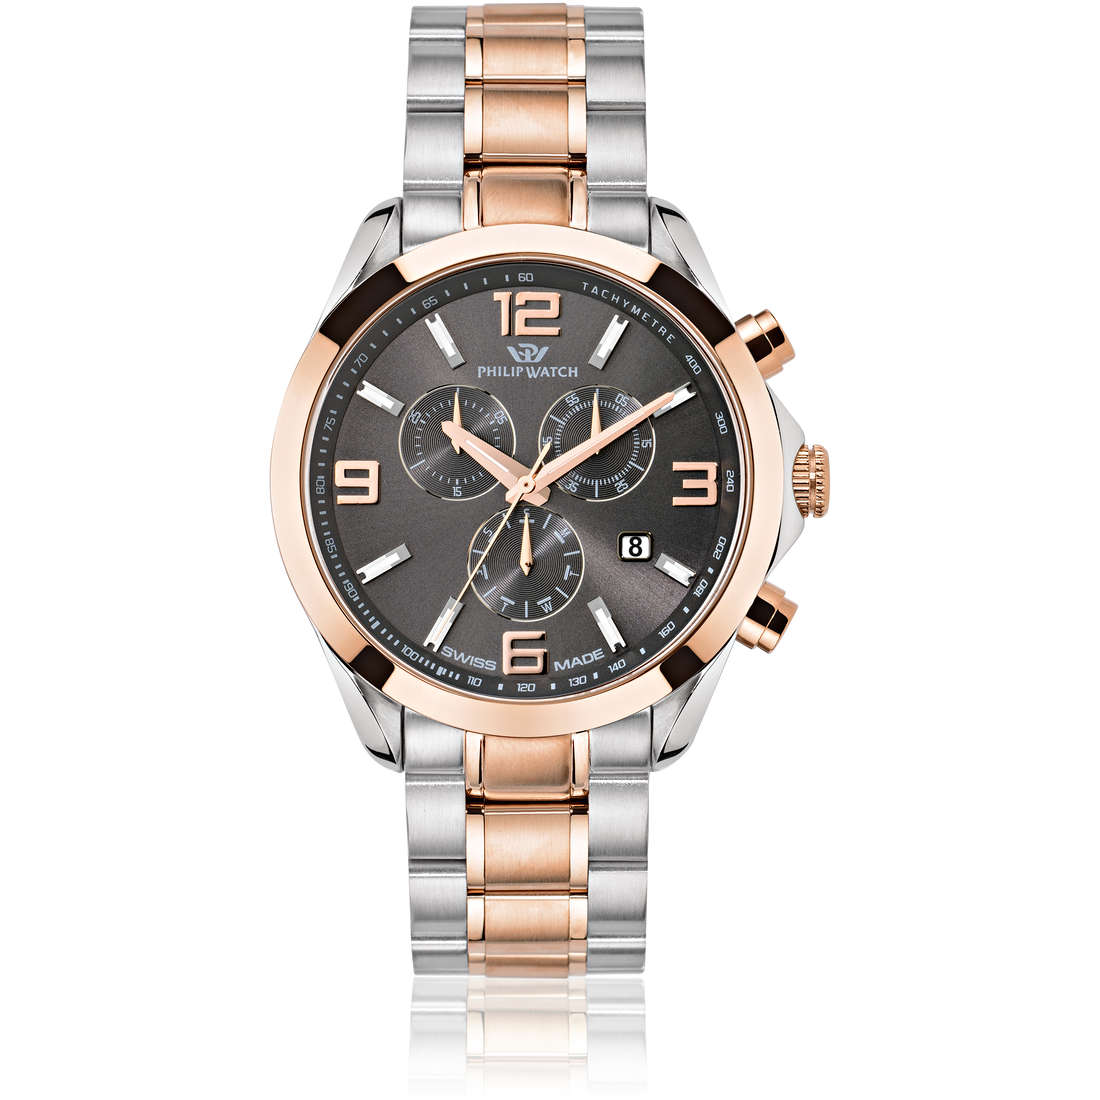 montre chronographe homme Philip Watch Blaze R8273665001